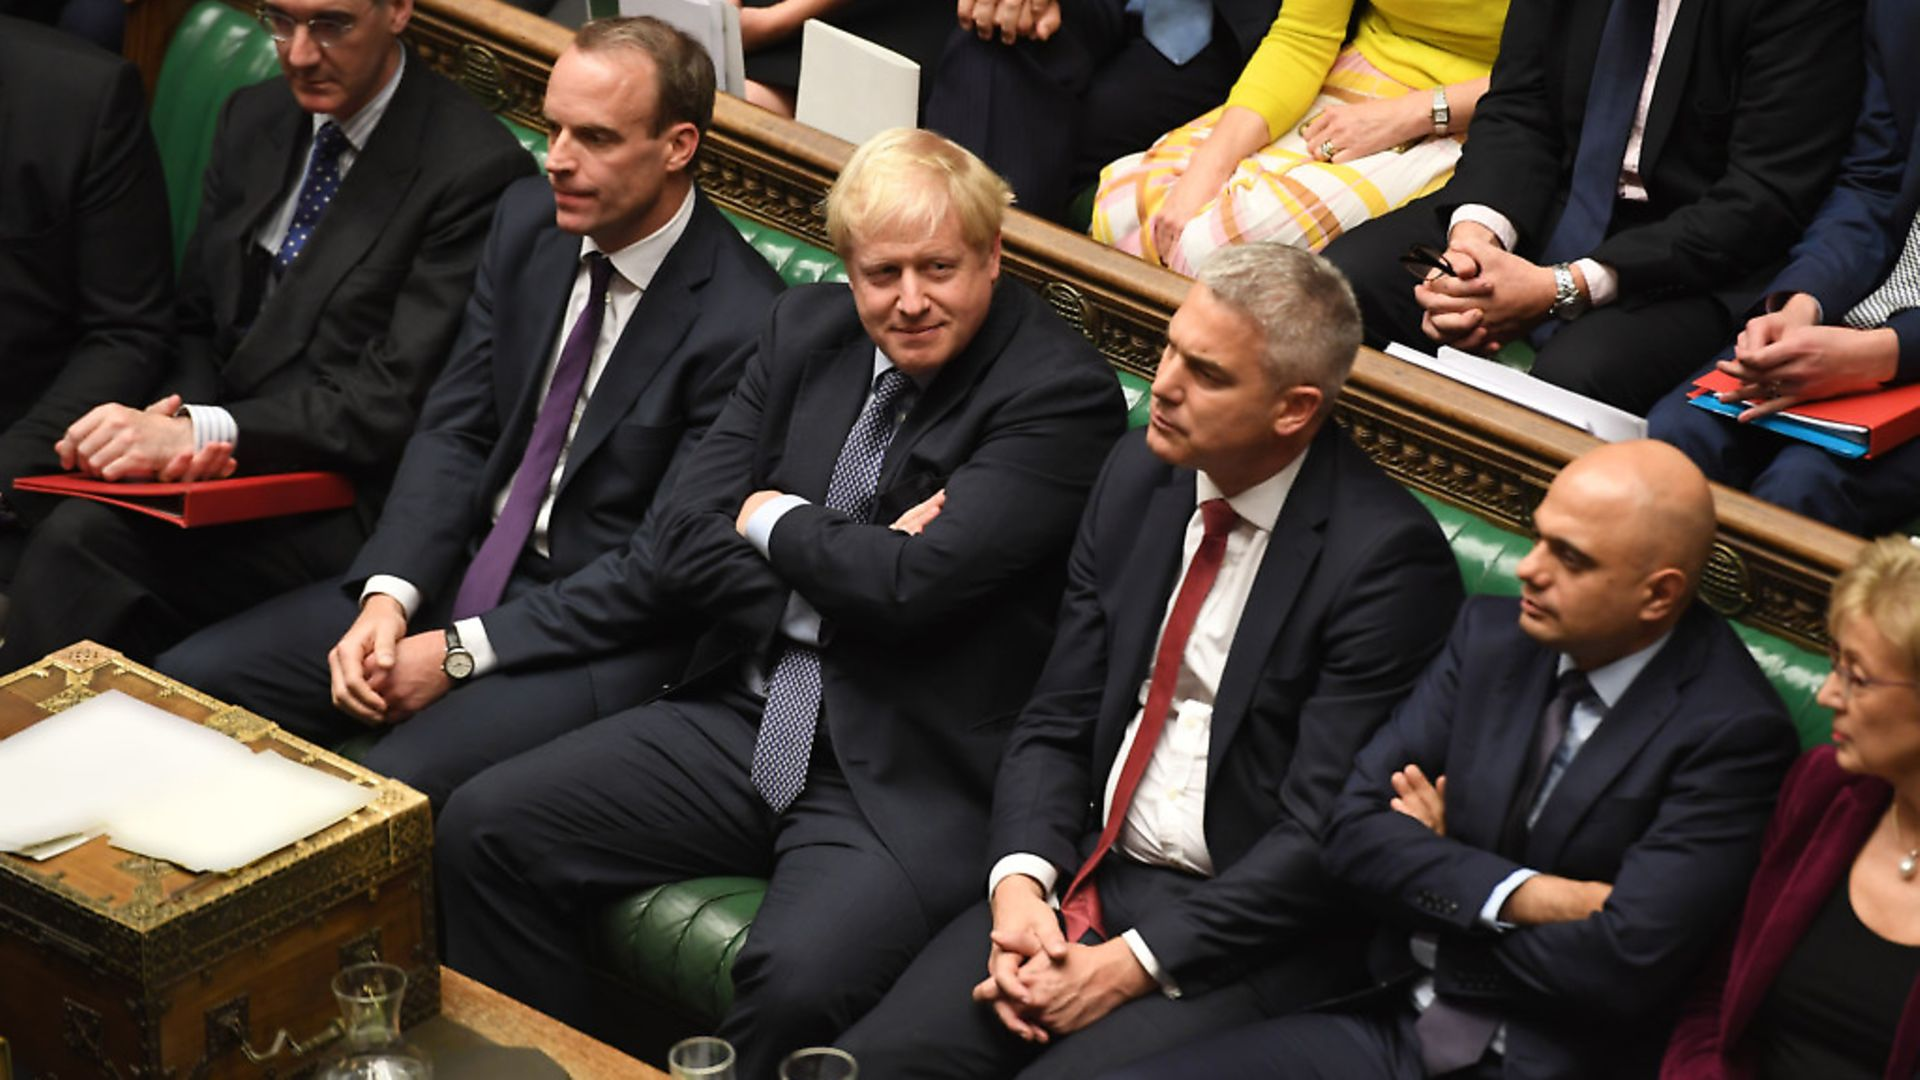 In June, Boris Johnson was reported to have had a secret meeting with David Cameron. Photograph: UK Parliament/Jessica Taylor/PA Wire. - Credit: PA